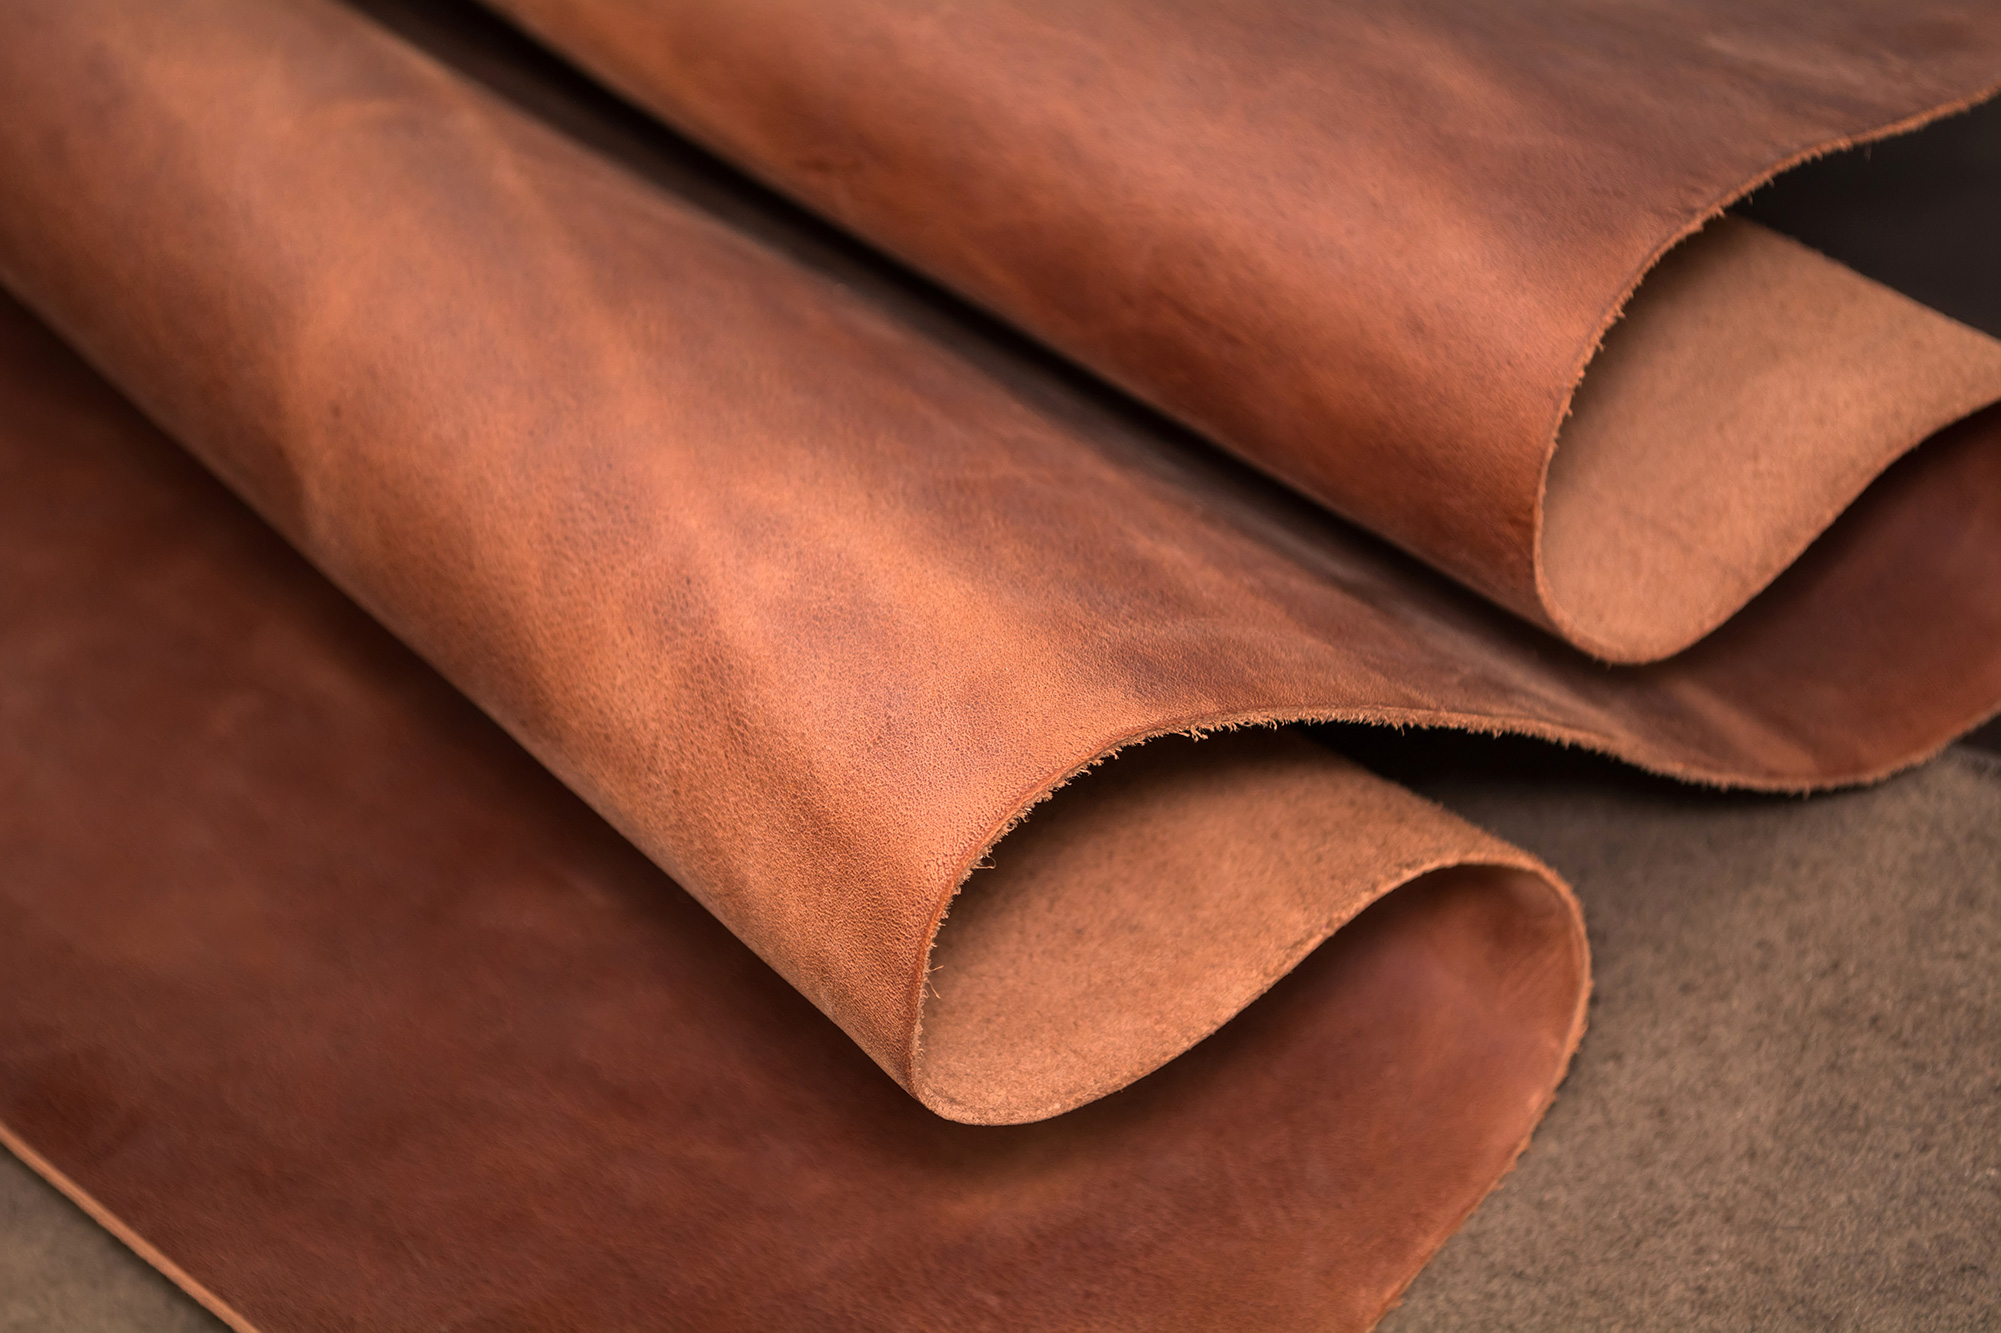 Cotance wants EU commission regulation for leather